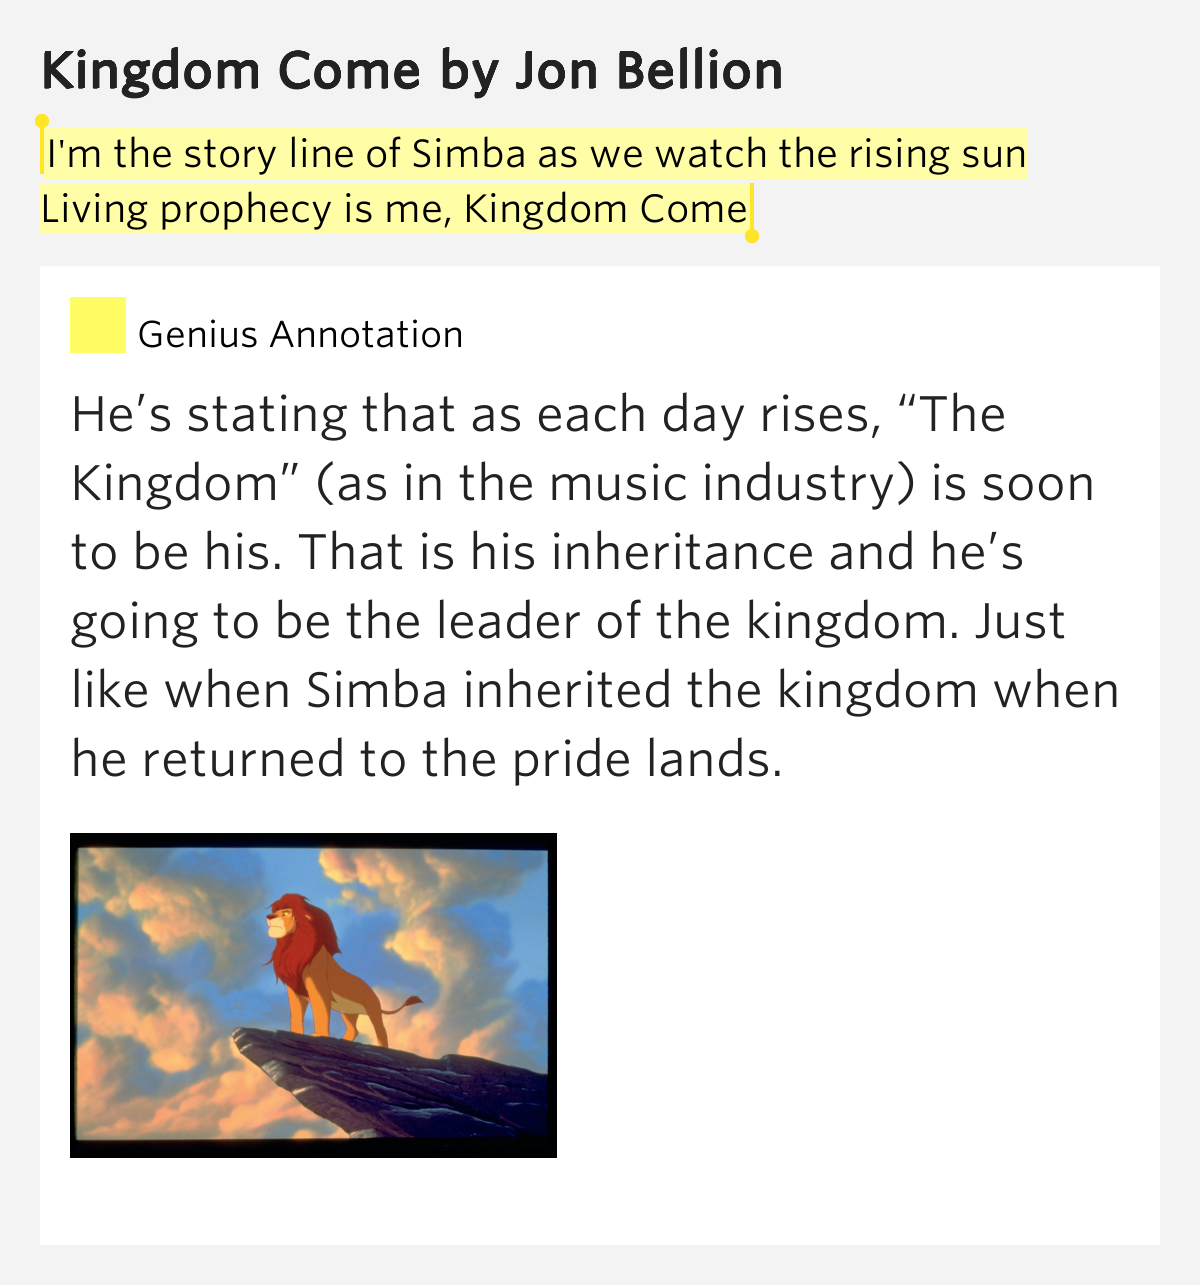 We The Kingdom: I'm The Story Line Of Simba As We Watch The Rising